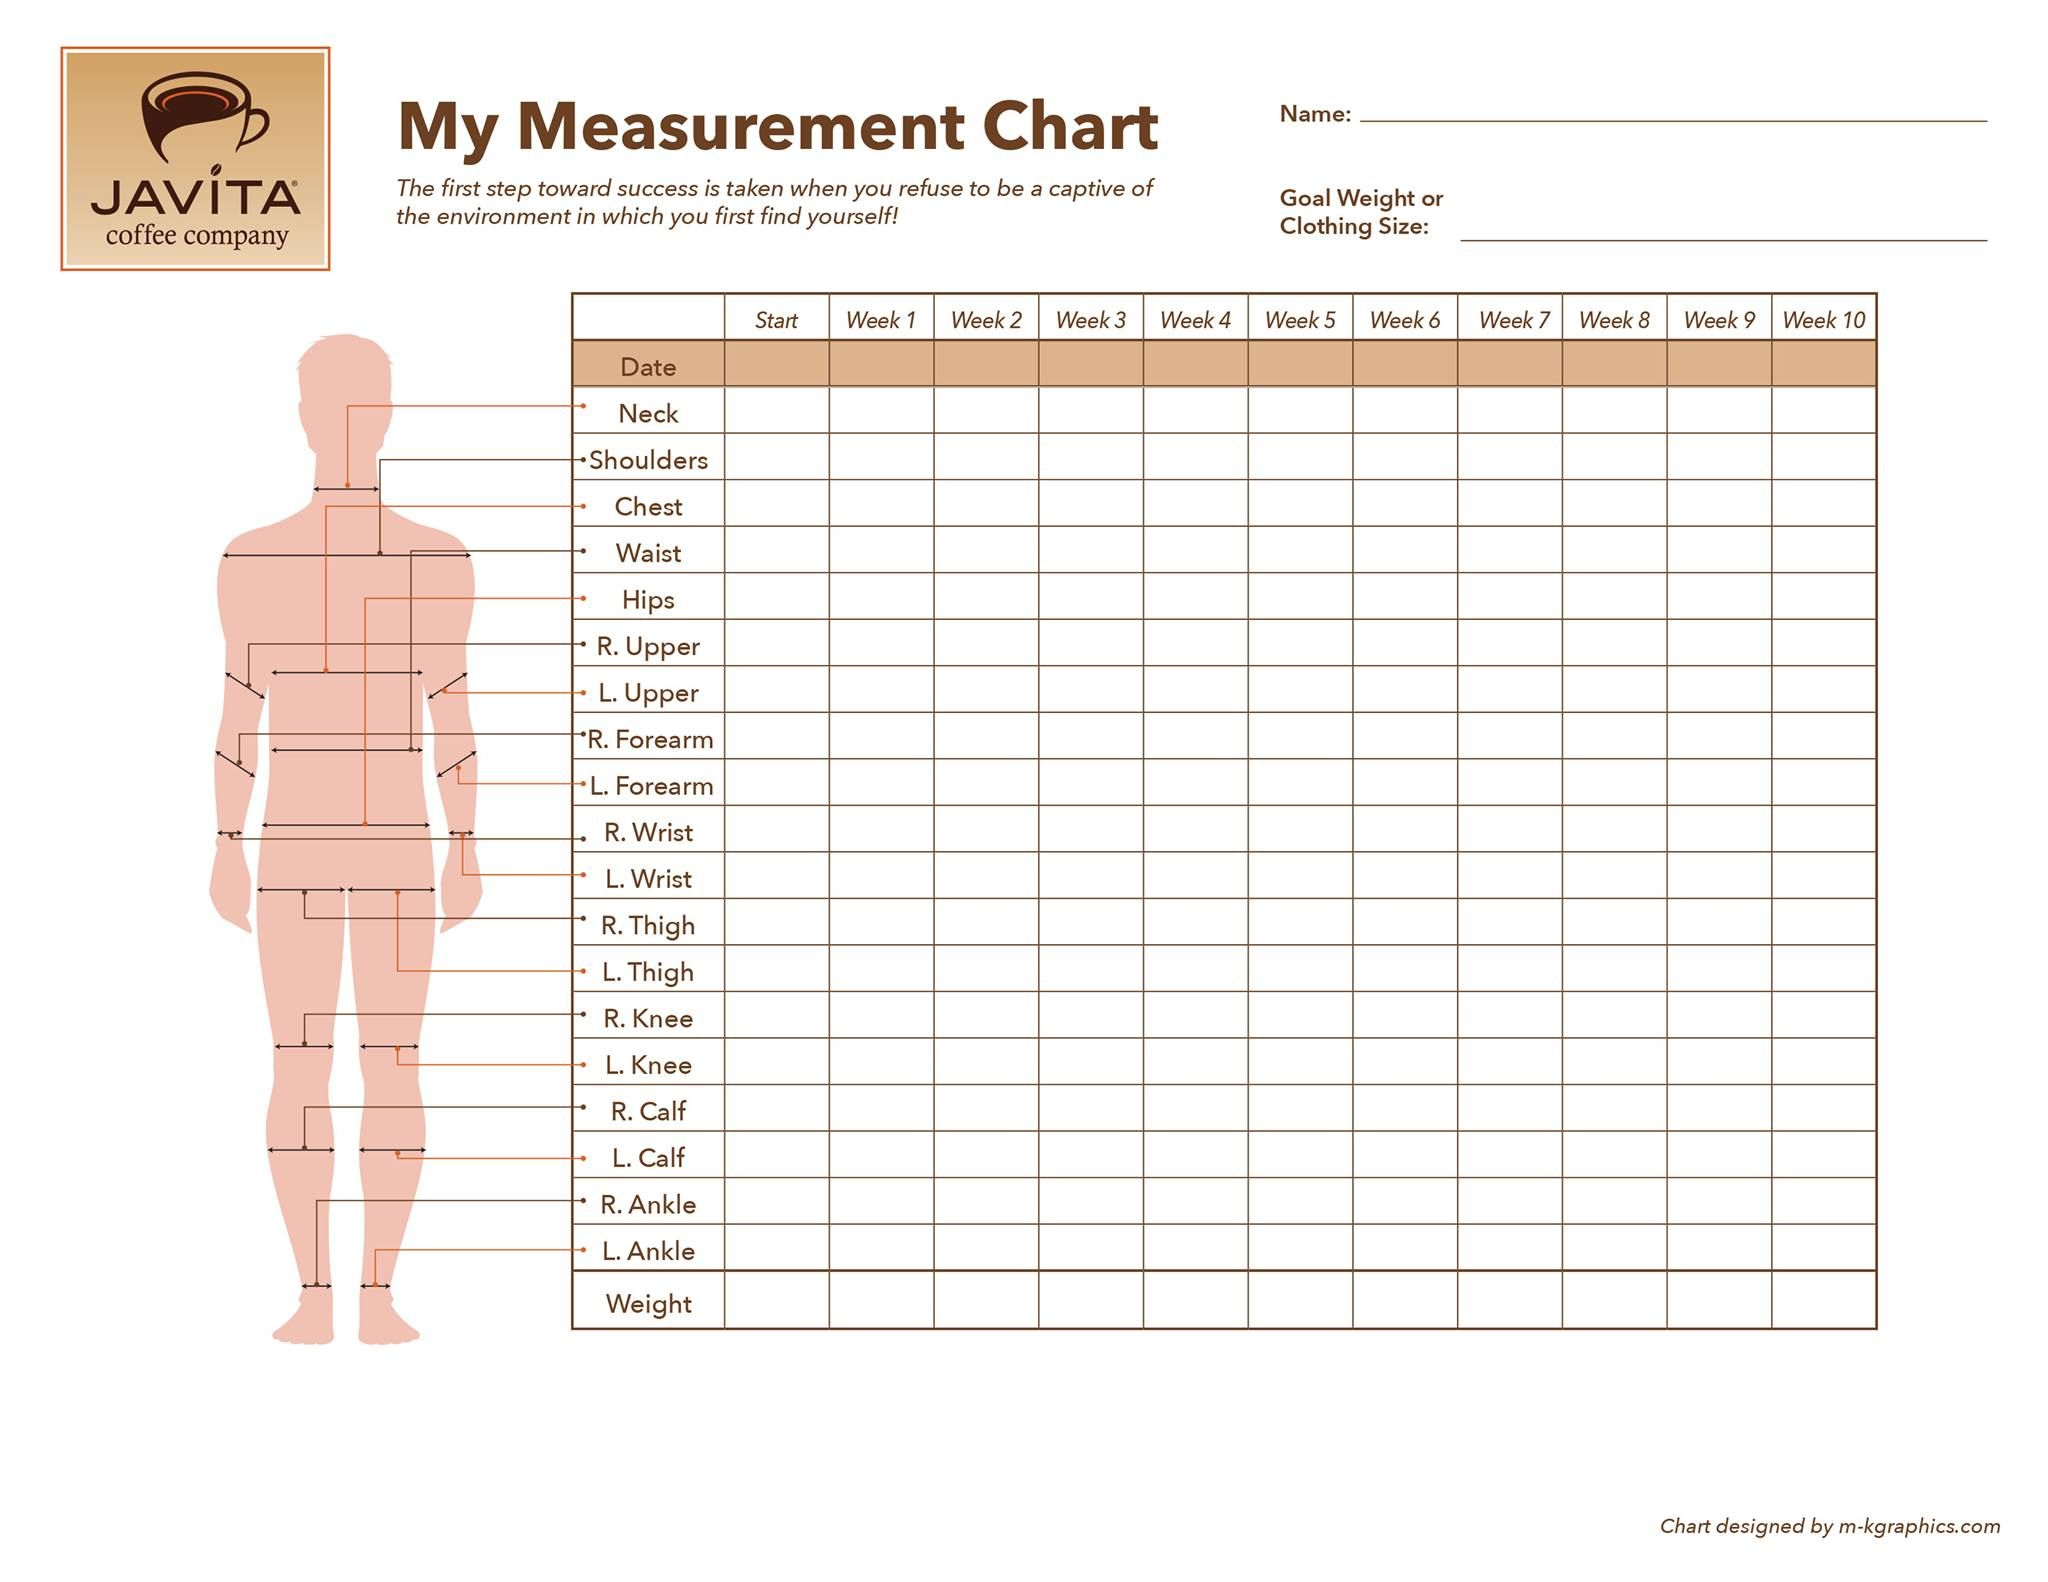 Javita Body Measurement Chart 2 048 1 582 Pixels